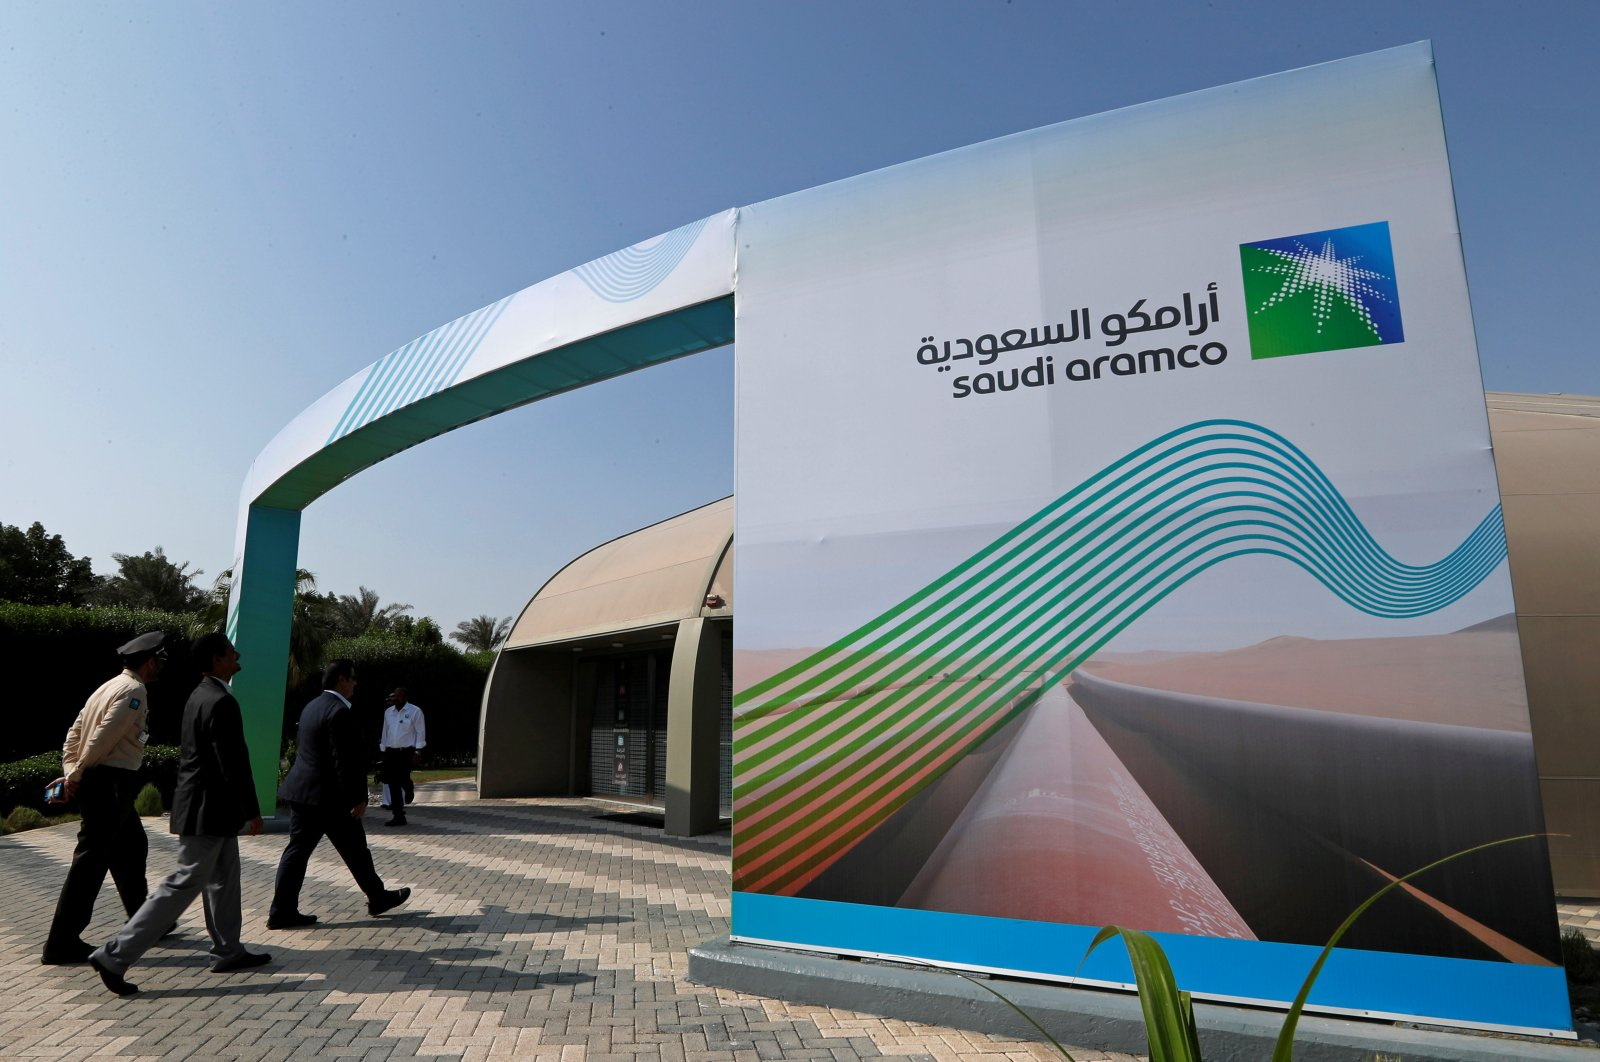 The logo of Aramco is seen as security personnel walk before the start of a press conference by Aramco at the Plaza Conference Center in Dhahran, Saudi Arabia, Nov. 3, 2019. (Reuters Photo)